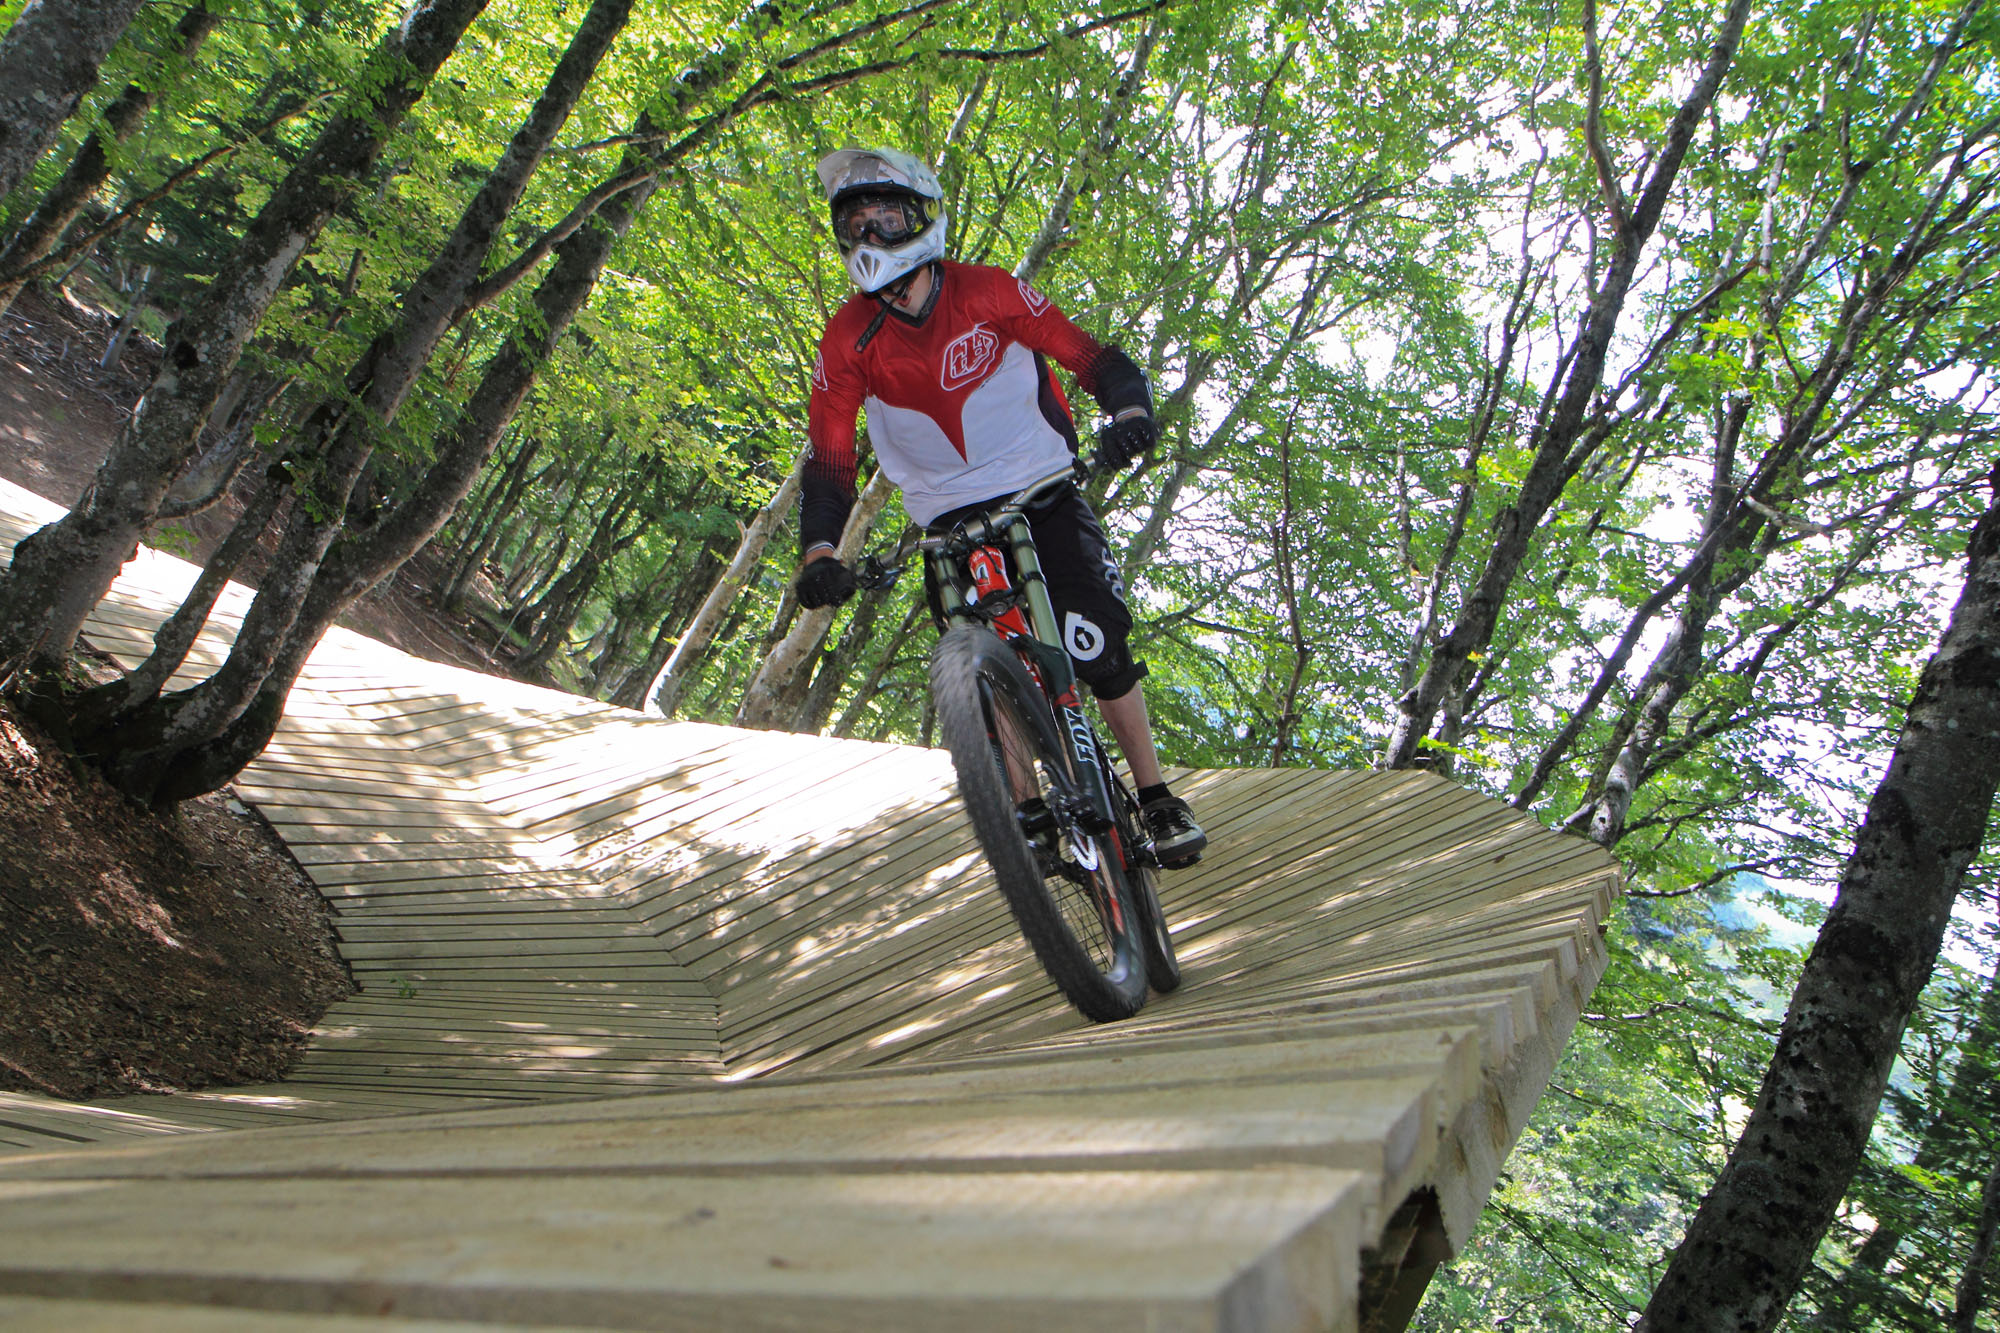 Bike Park VTT à Super Besse